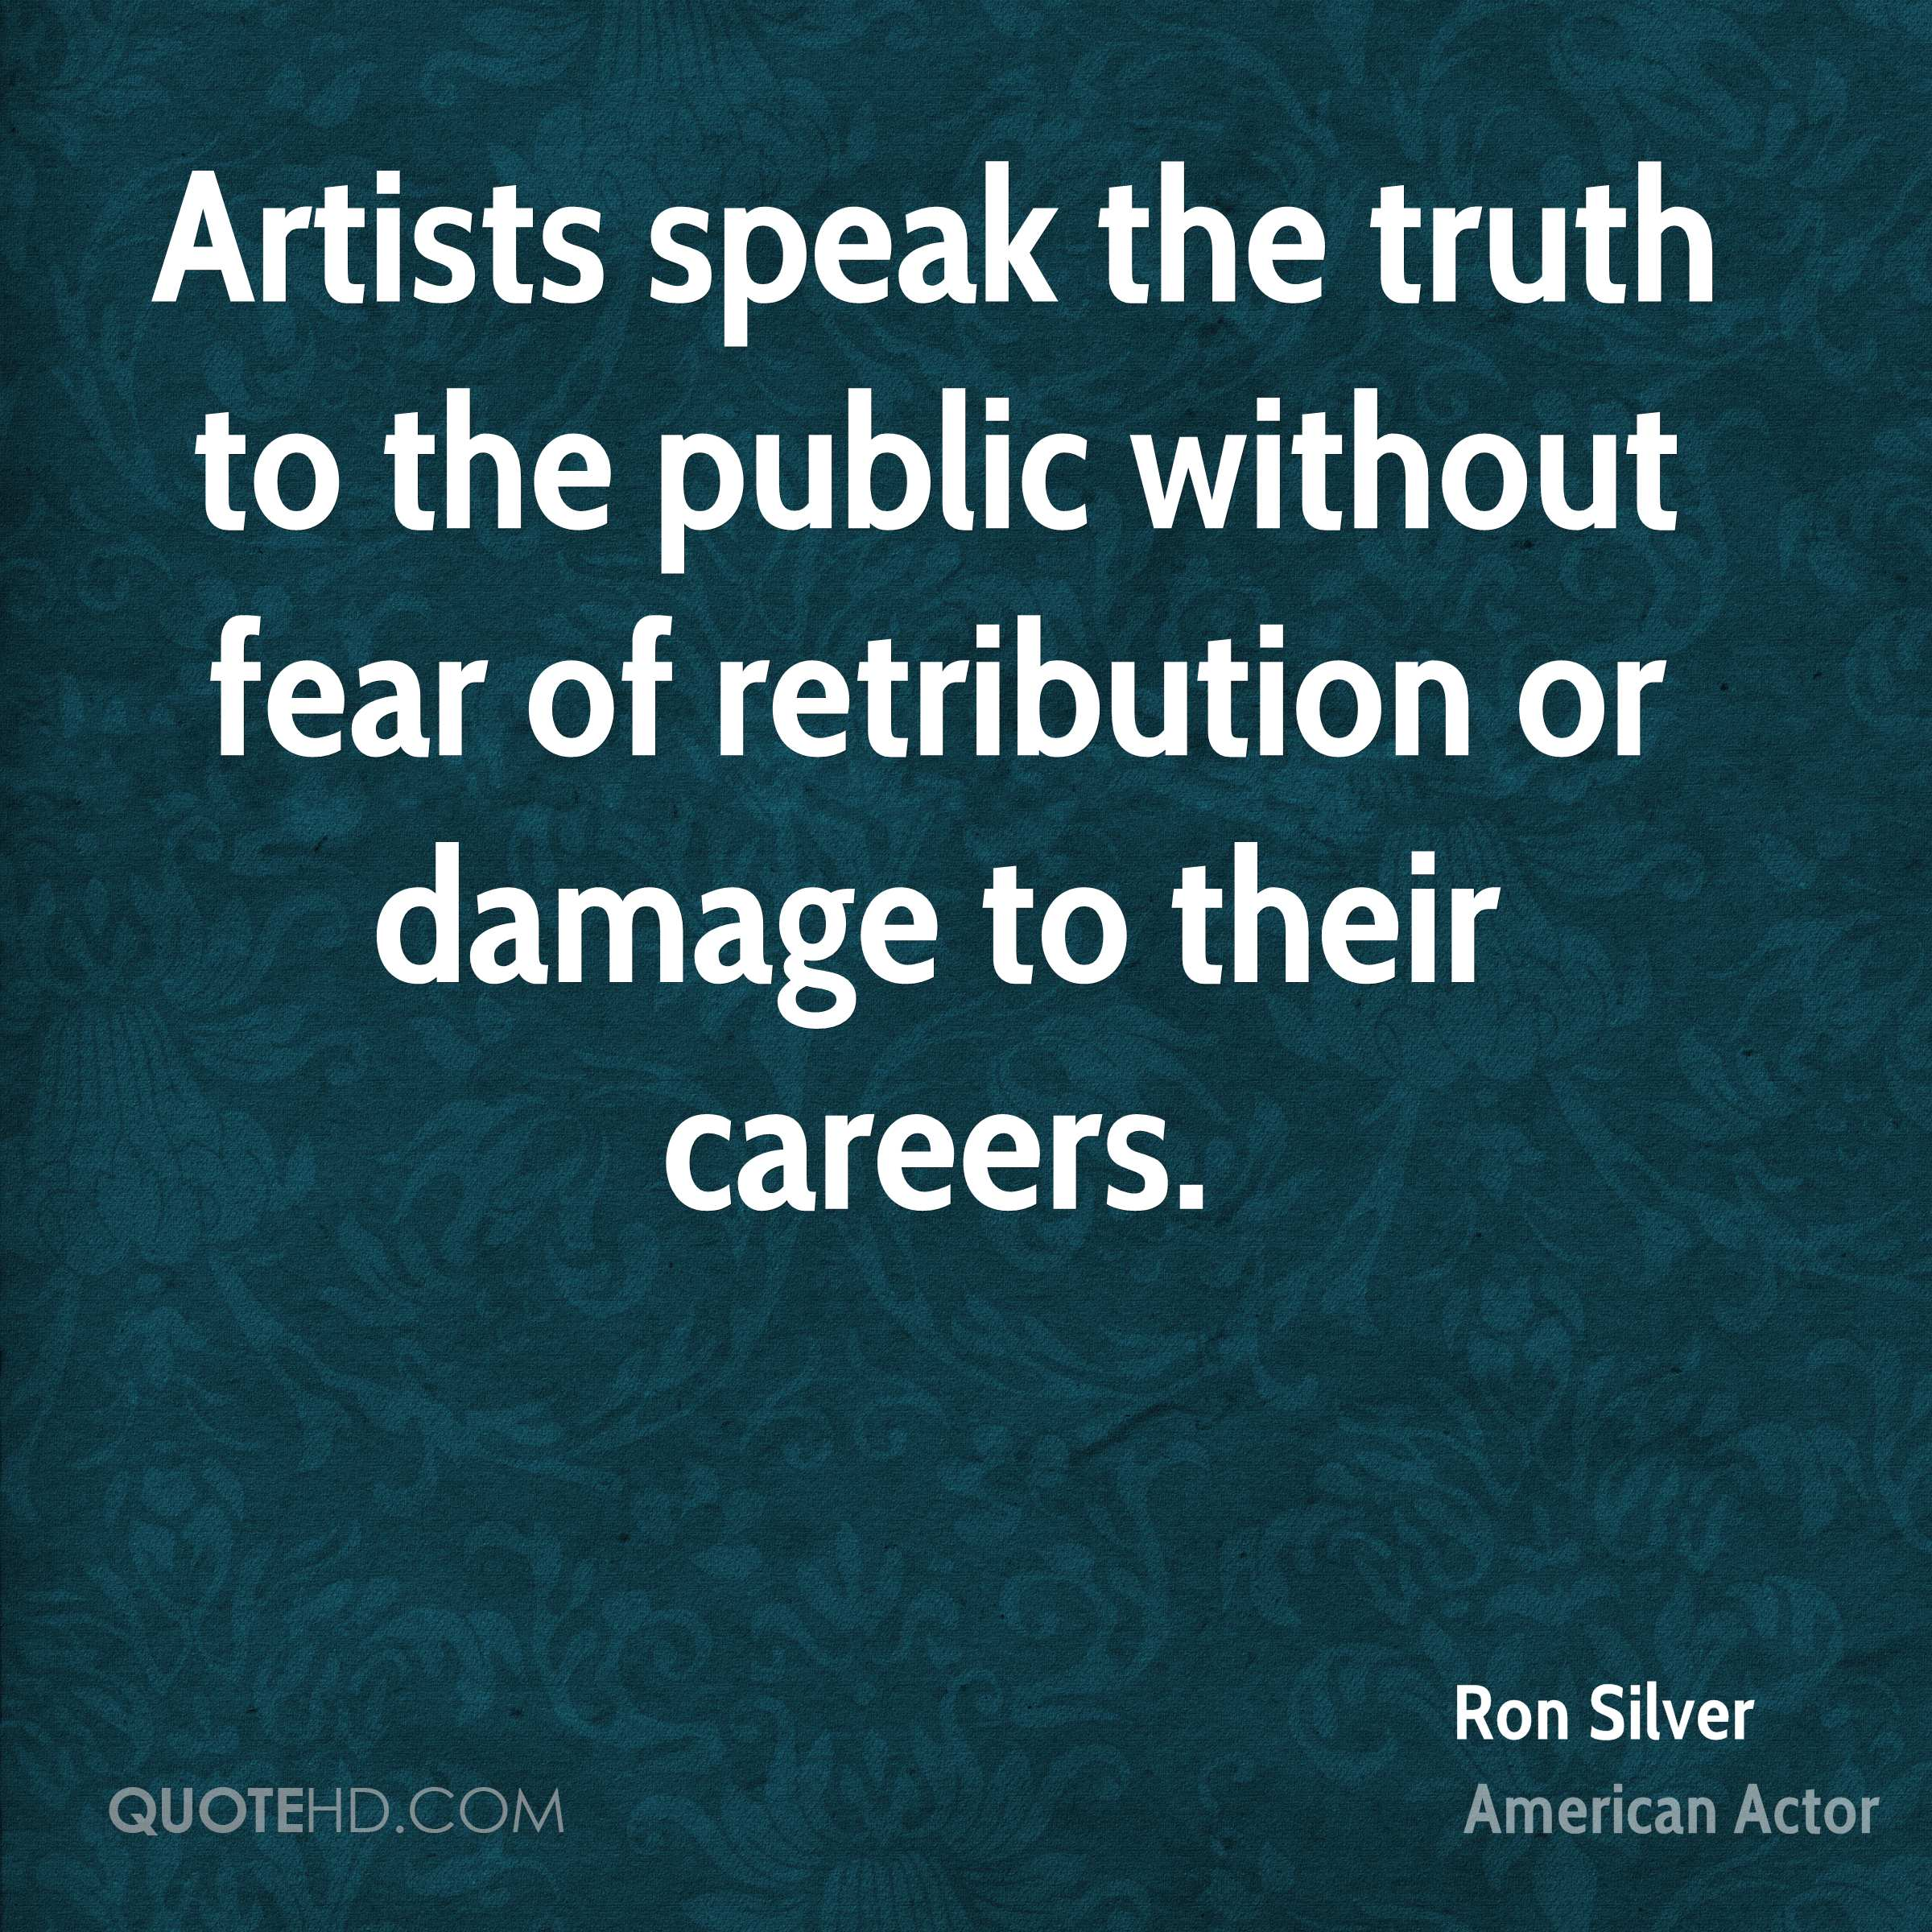 Artists speak the truth to the public without fear of retribution or damage to their careers.